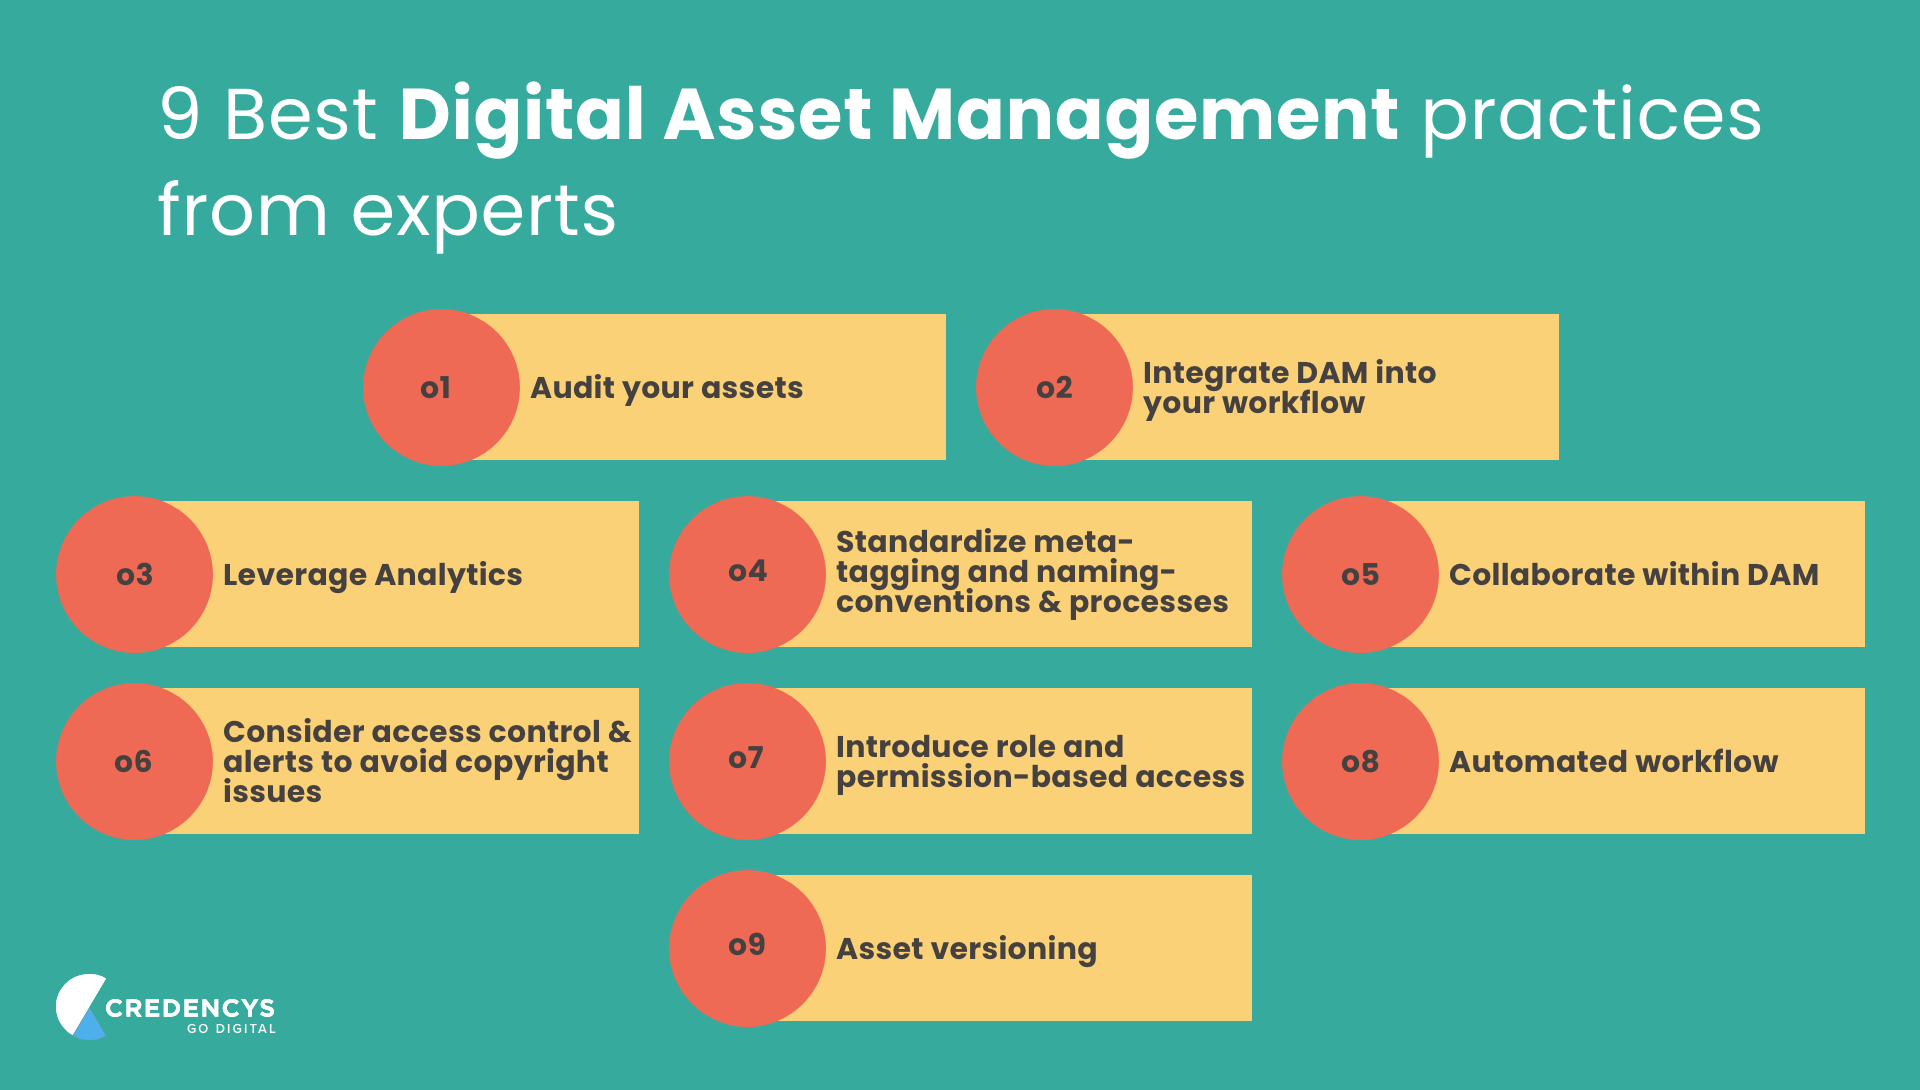 Digital Asset Management Practices